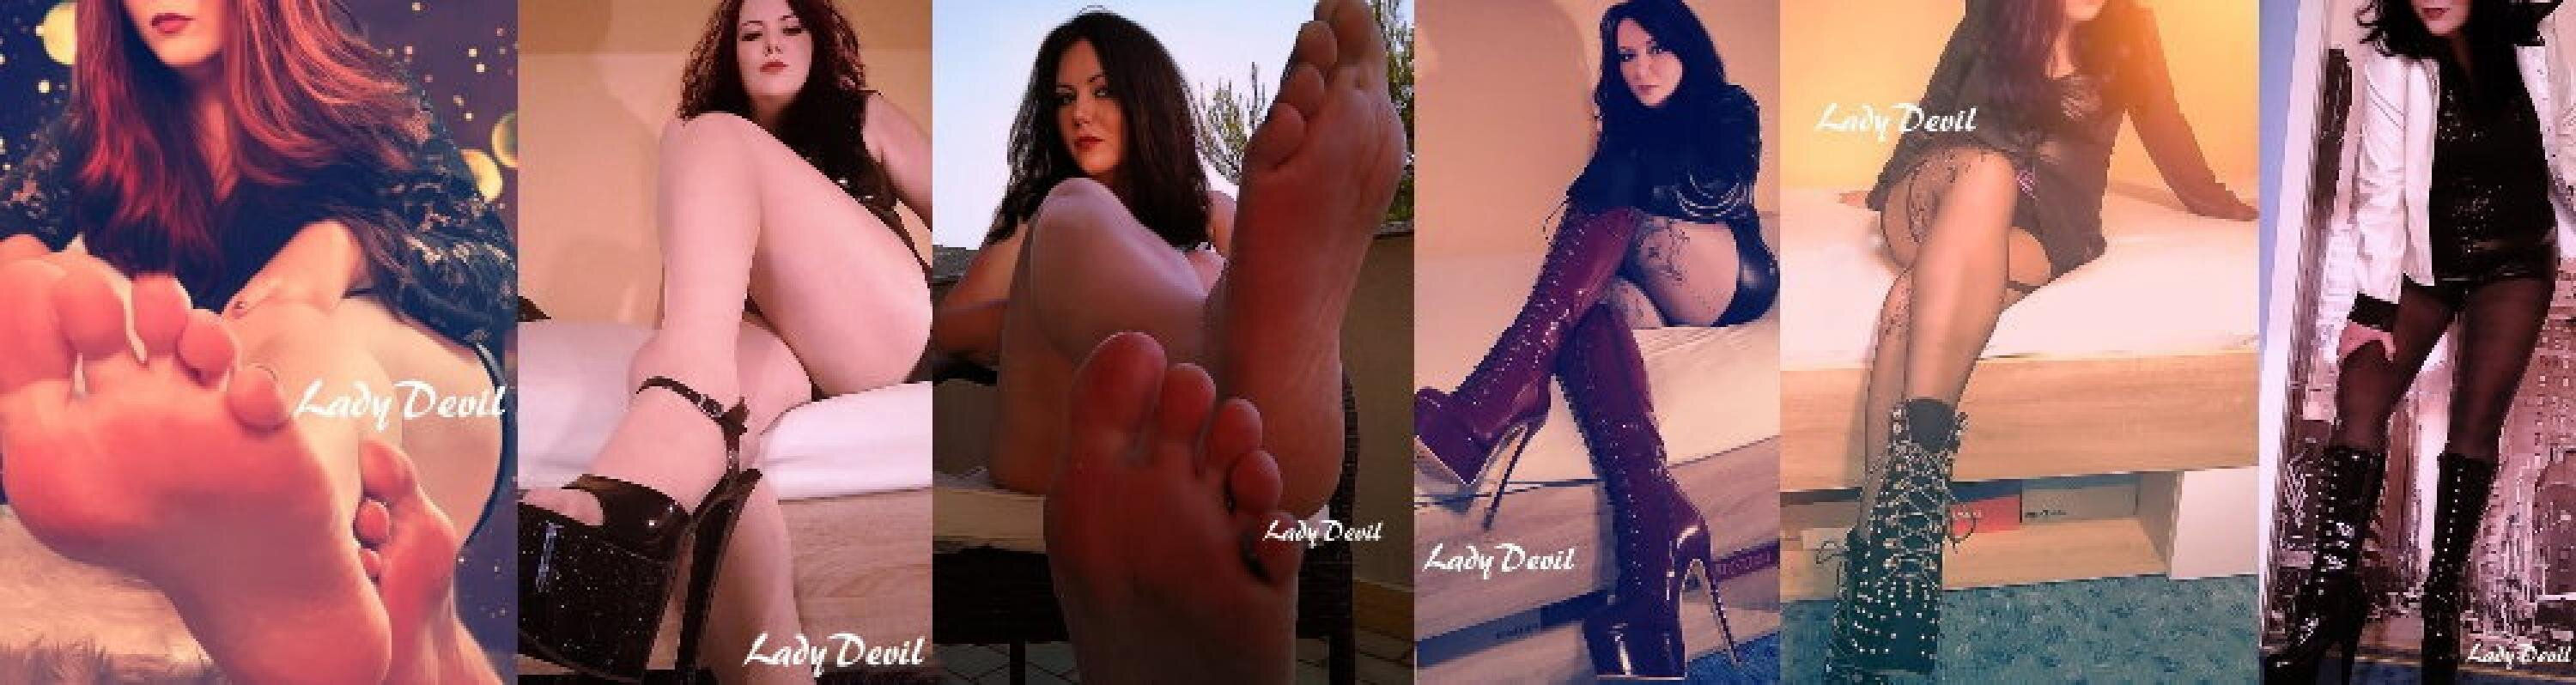 LadyDevil Cover Foto